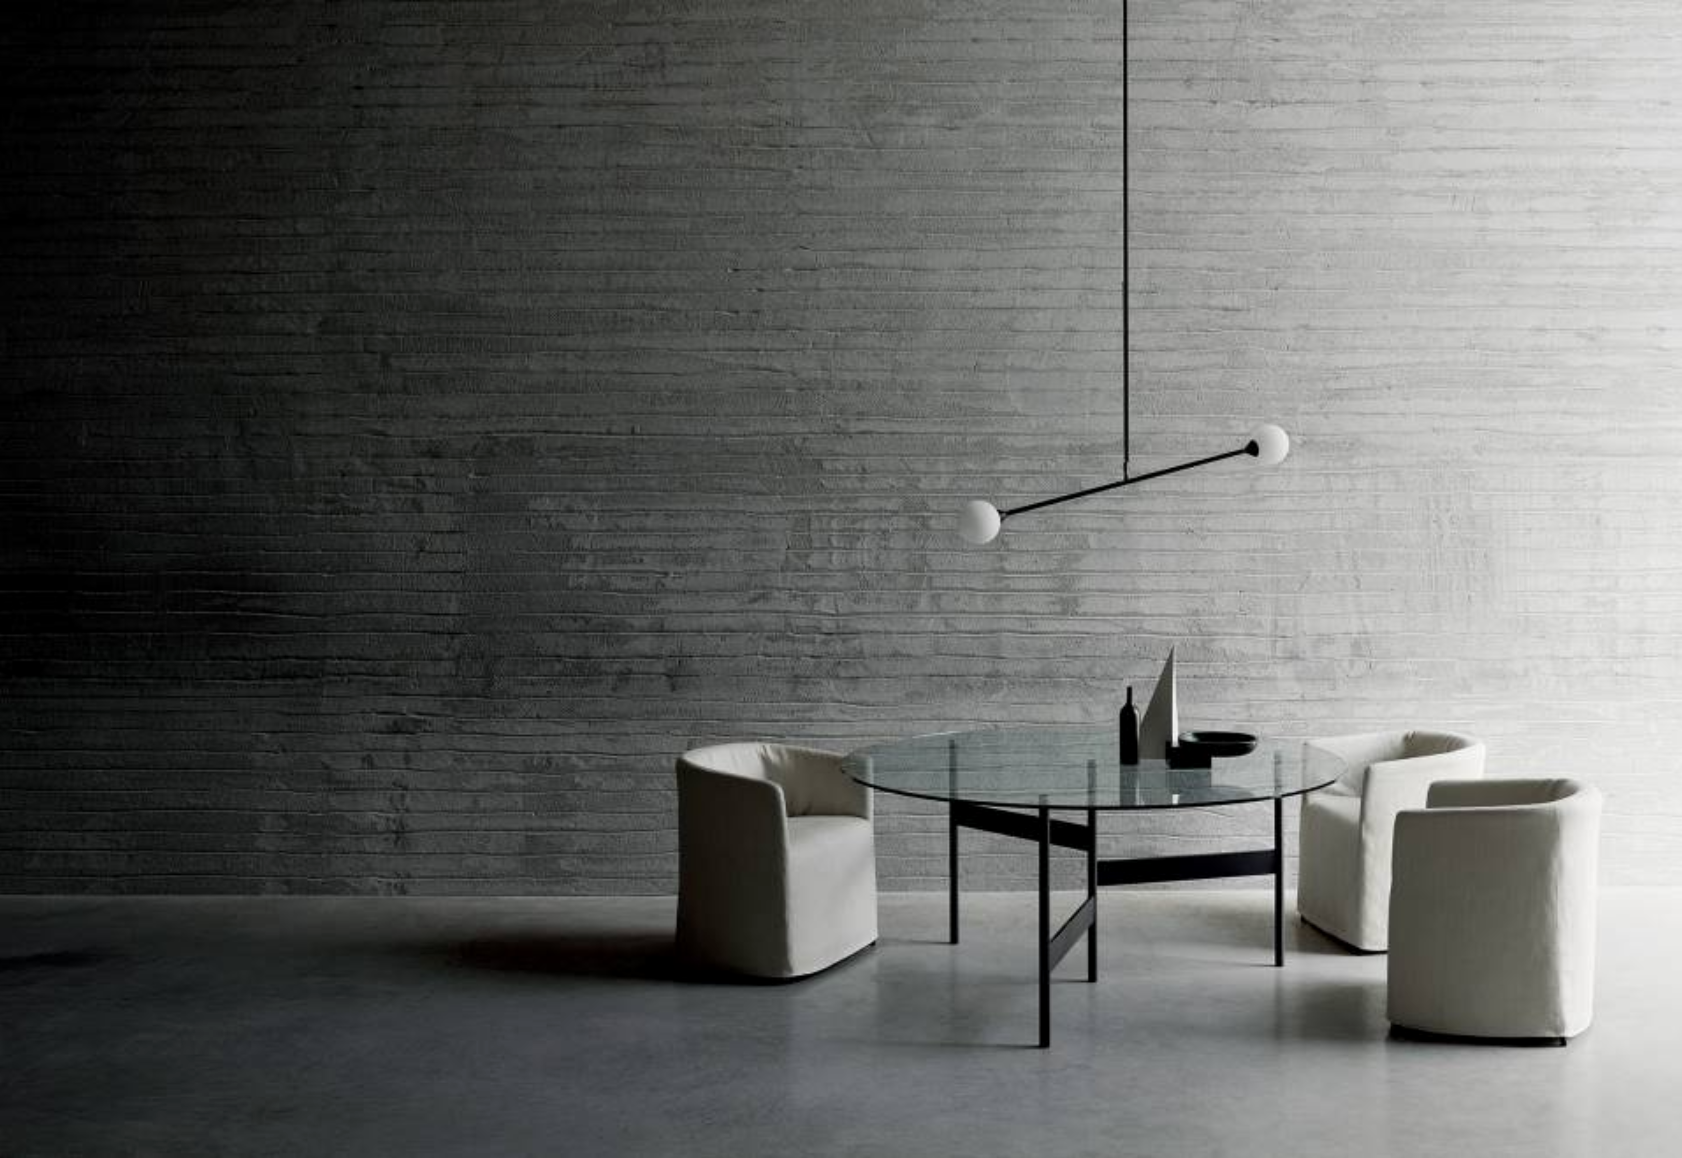 Sculptural minimalist dining room.